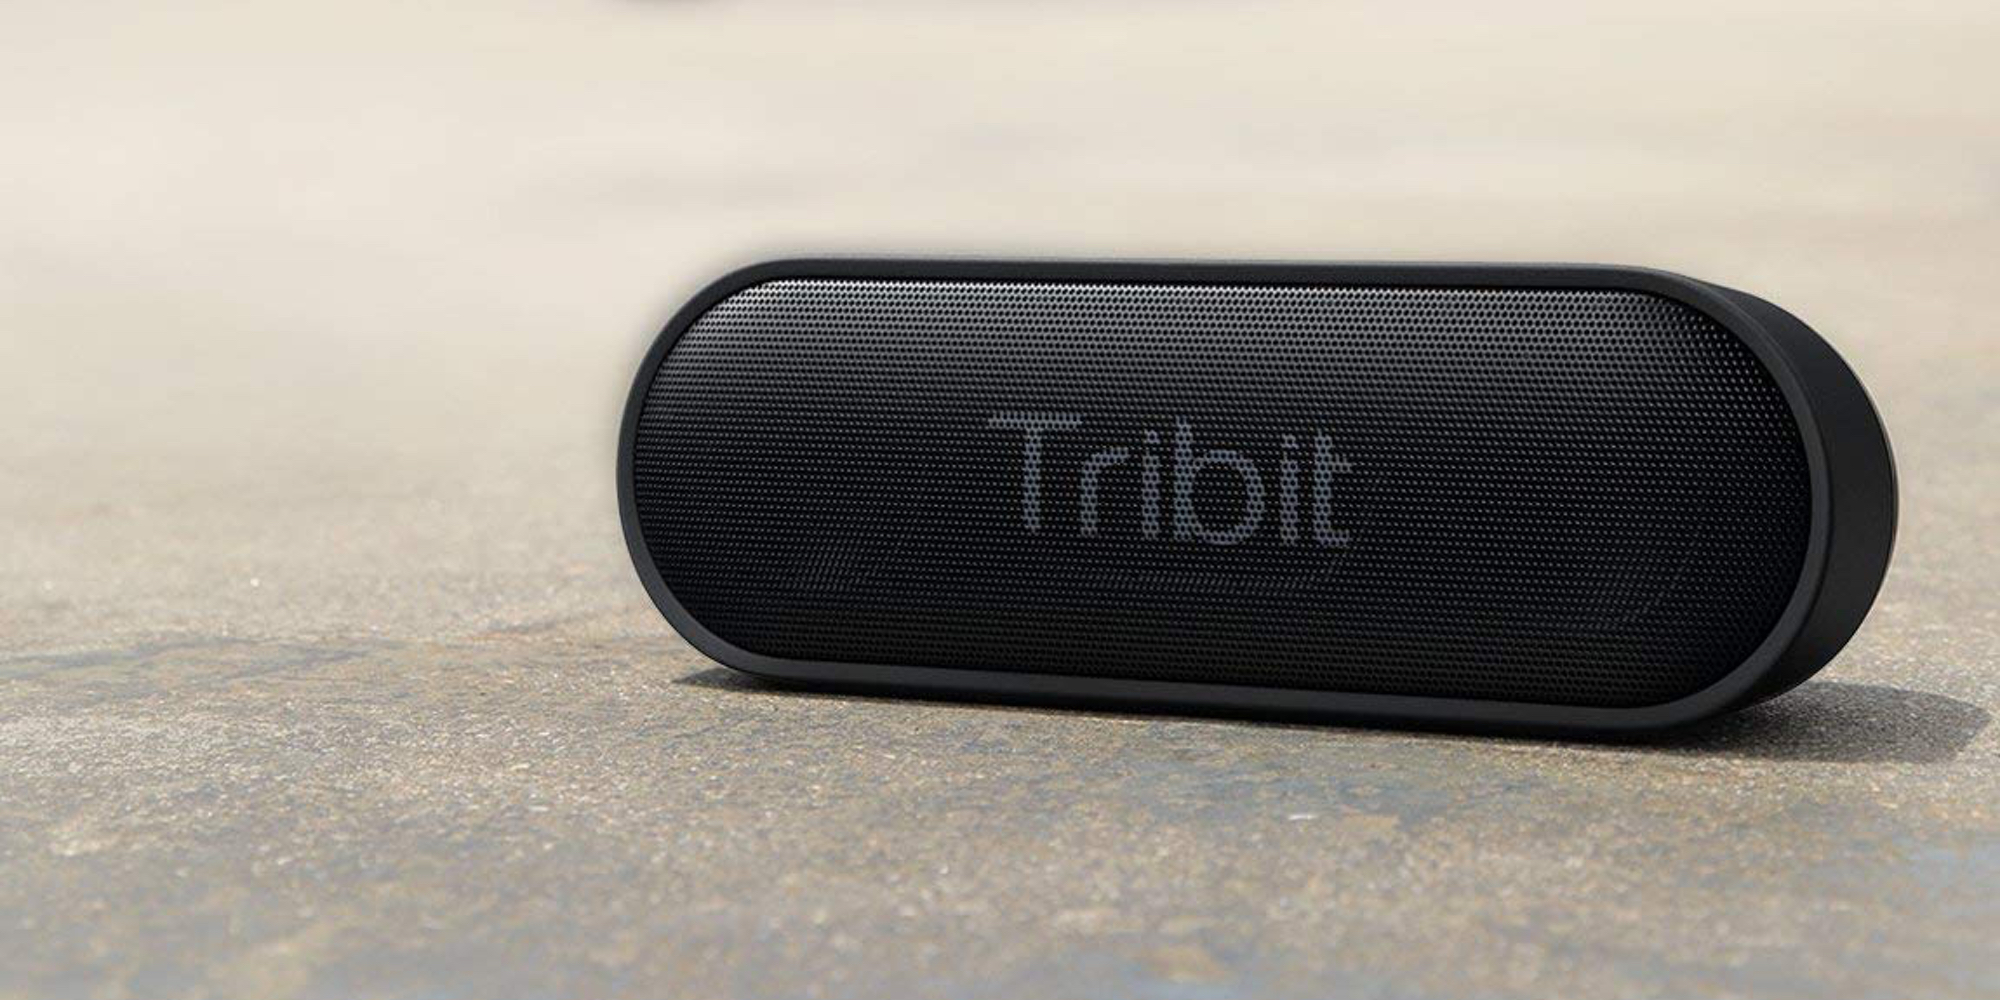 Smartphone Accessories: Tribit Waterproof Bluetooth Speaker $23 Prime shipped, more